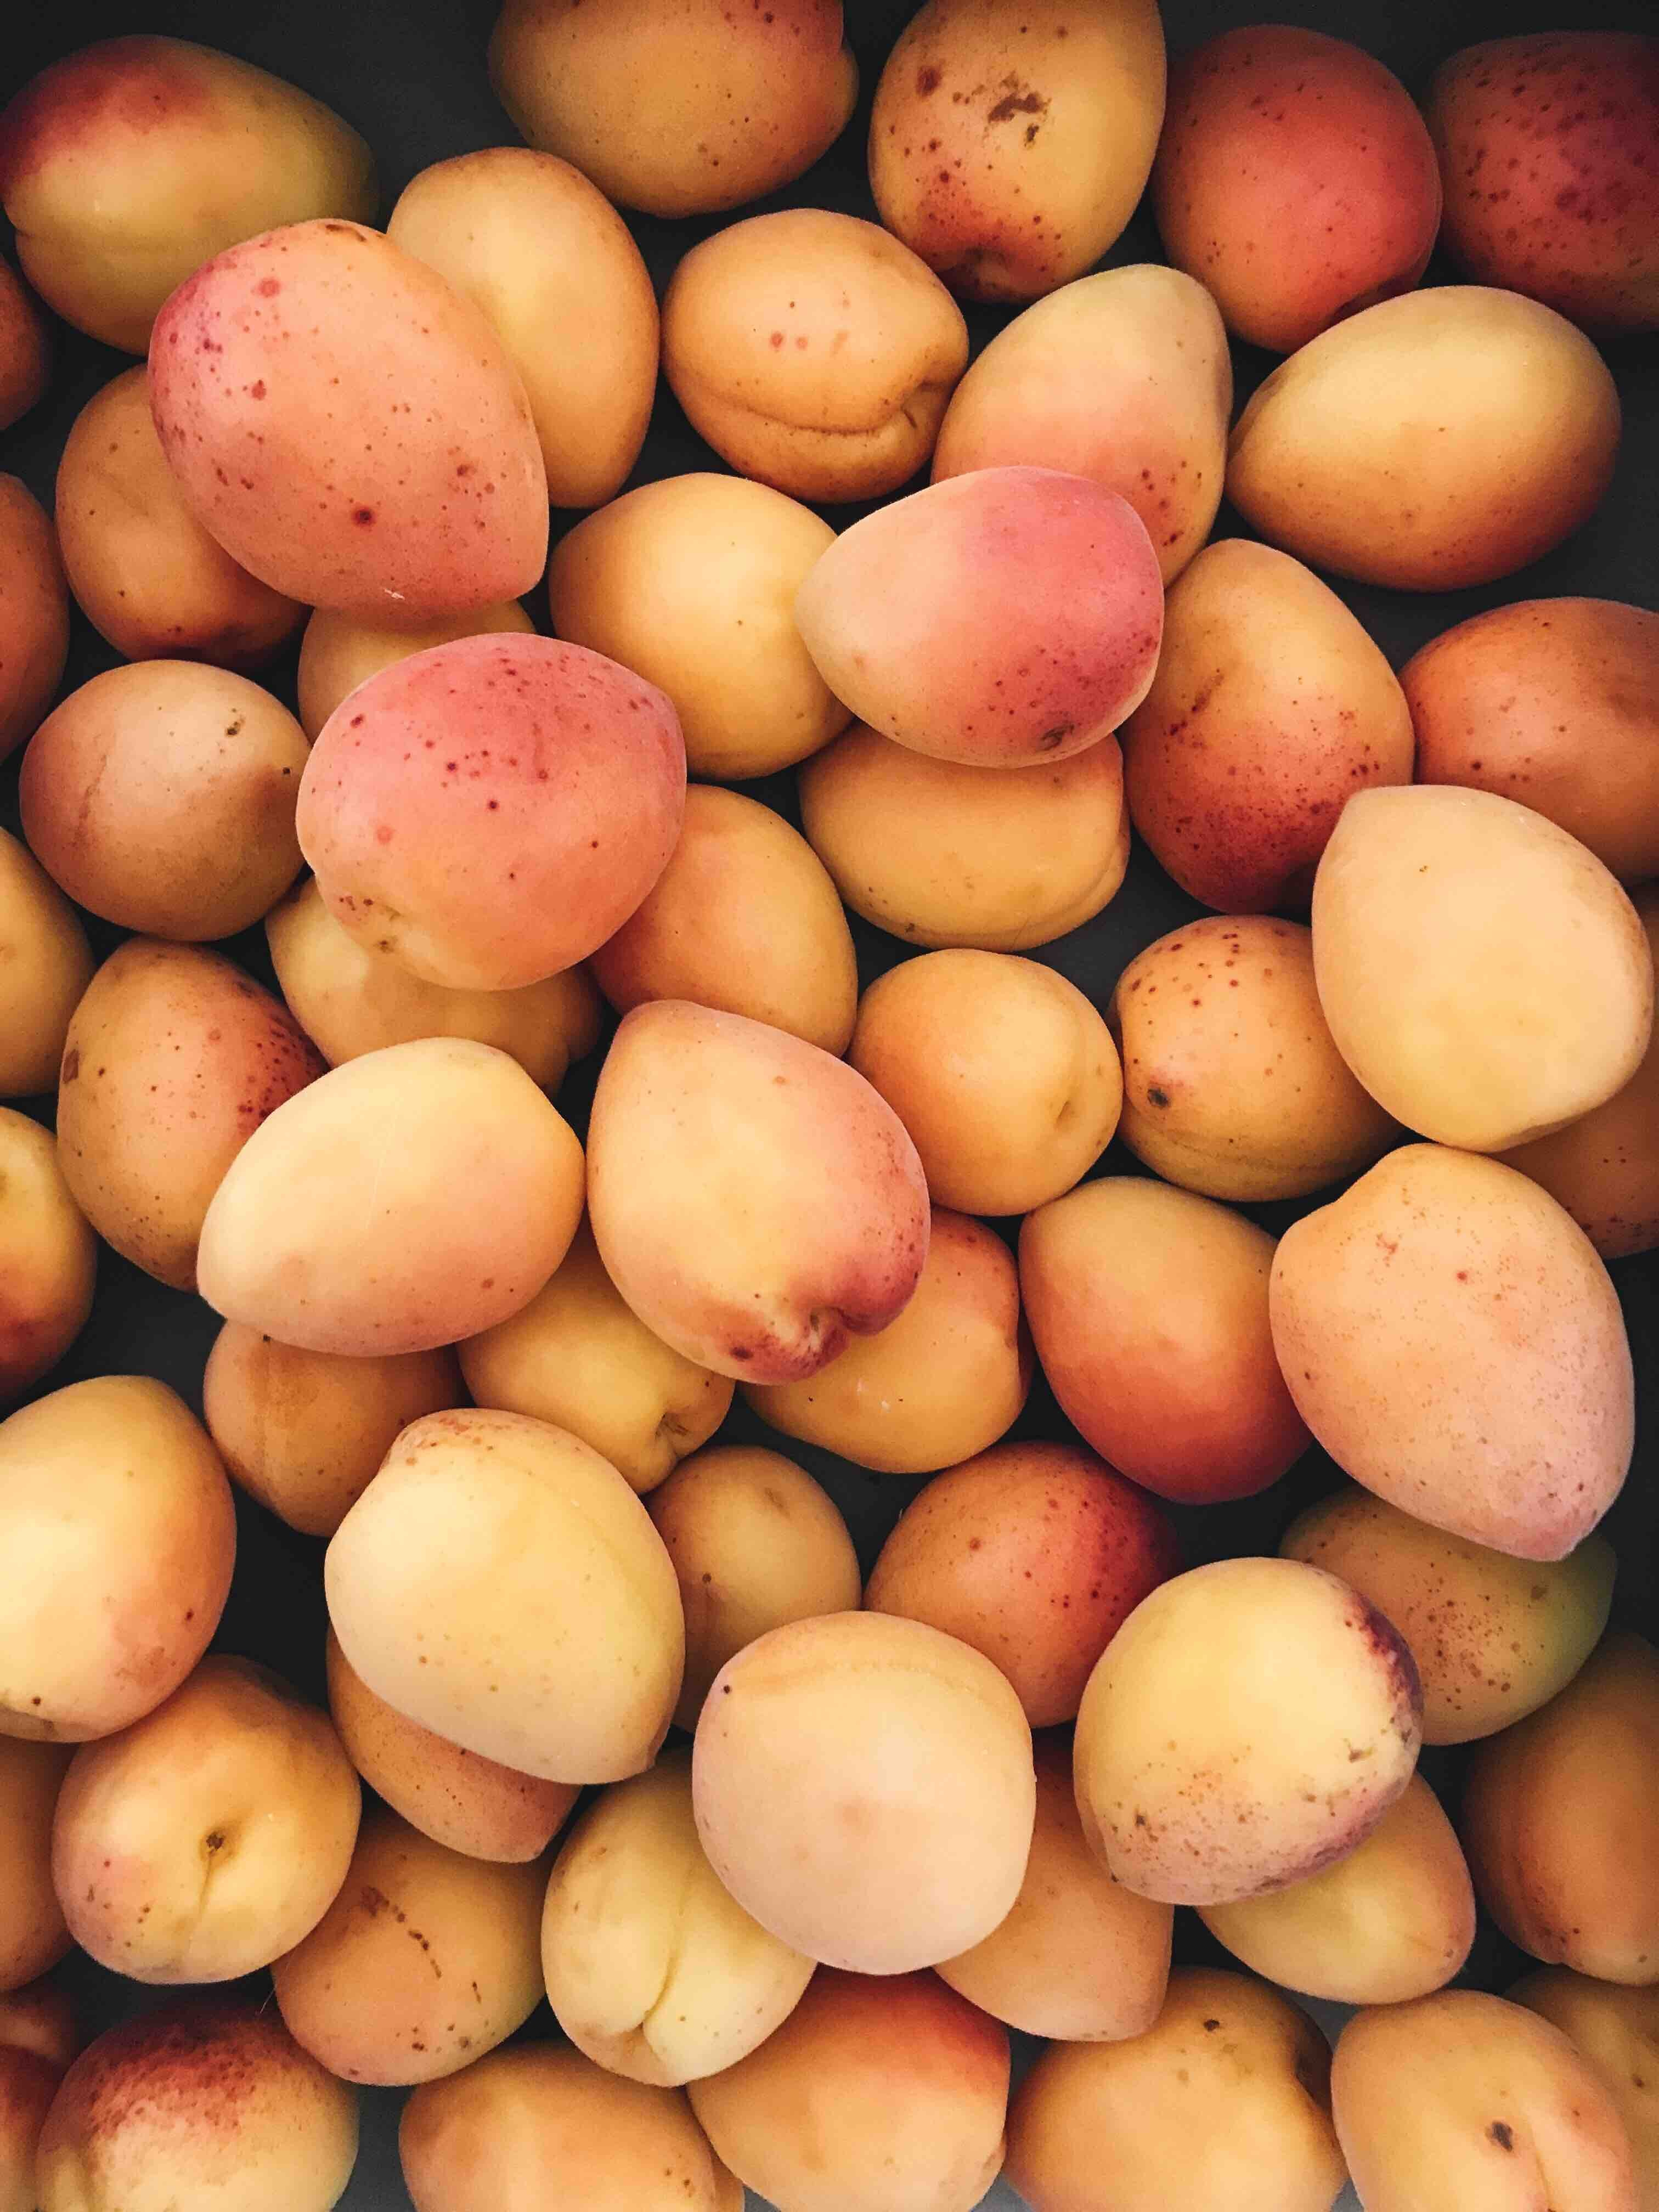 Pile of fresh apricots at a produce market